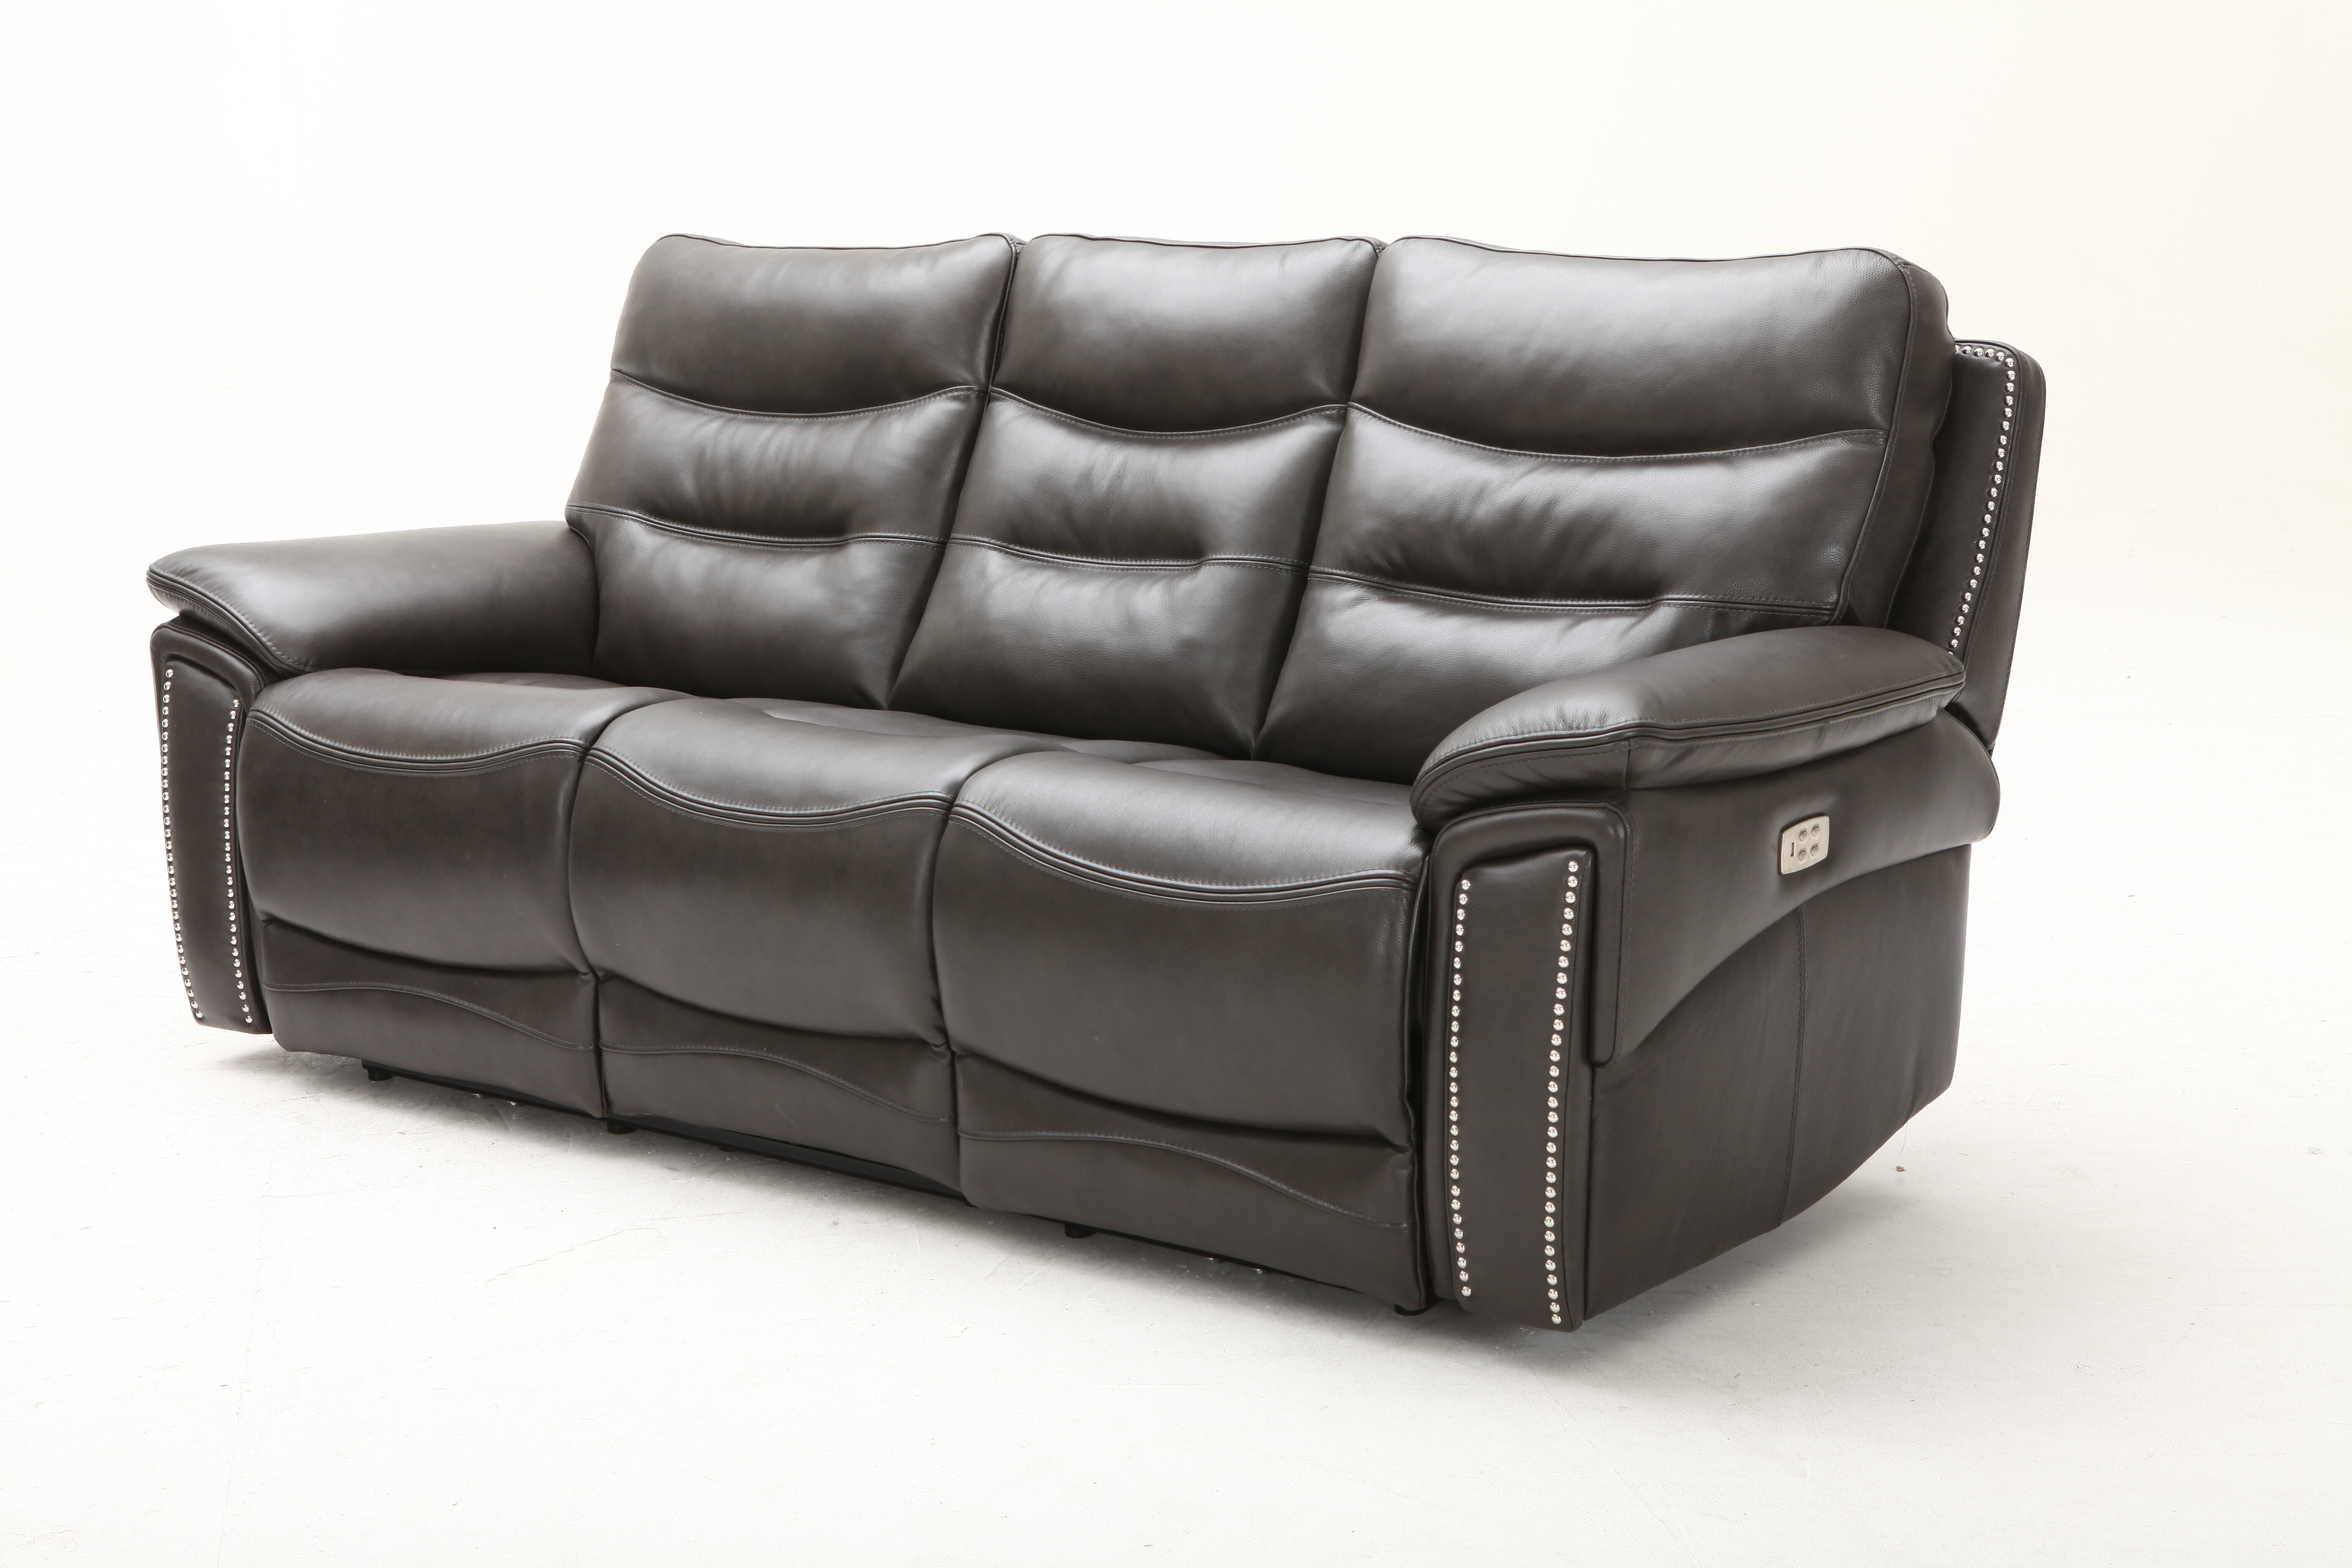 City Lights Leather Reclining Sofa